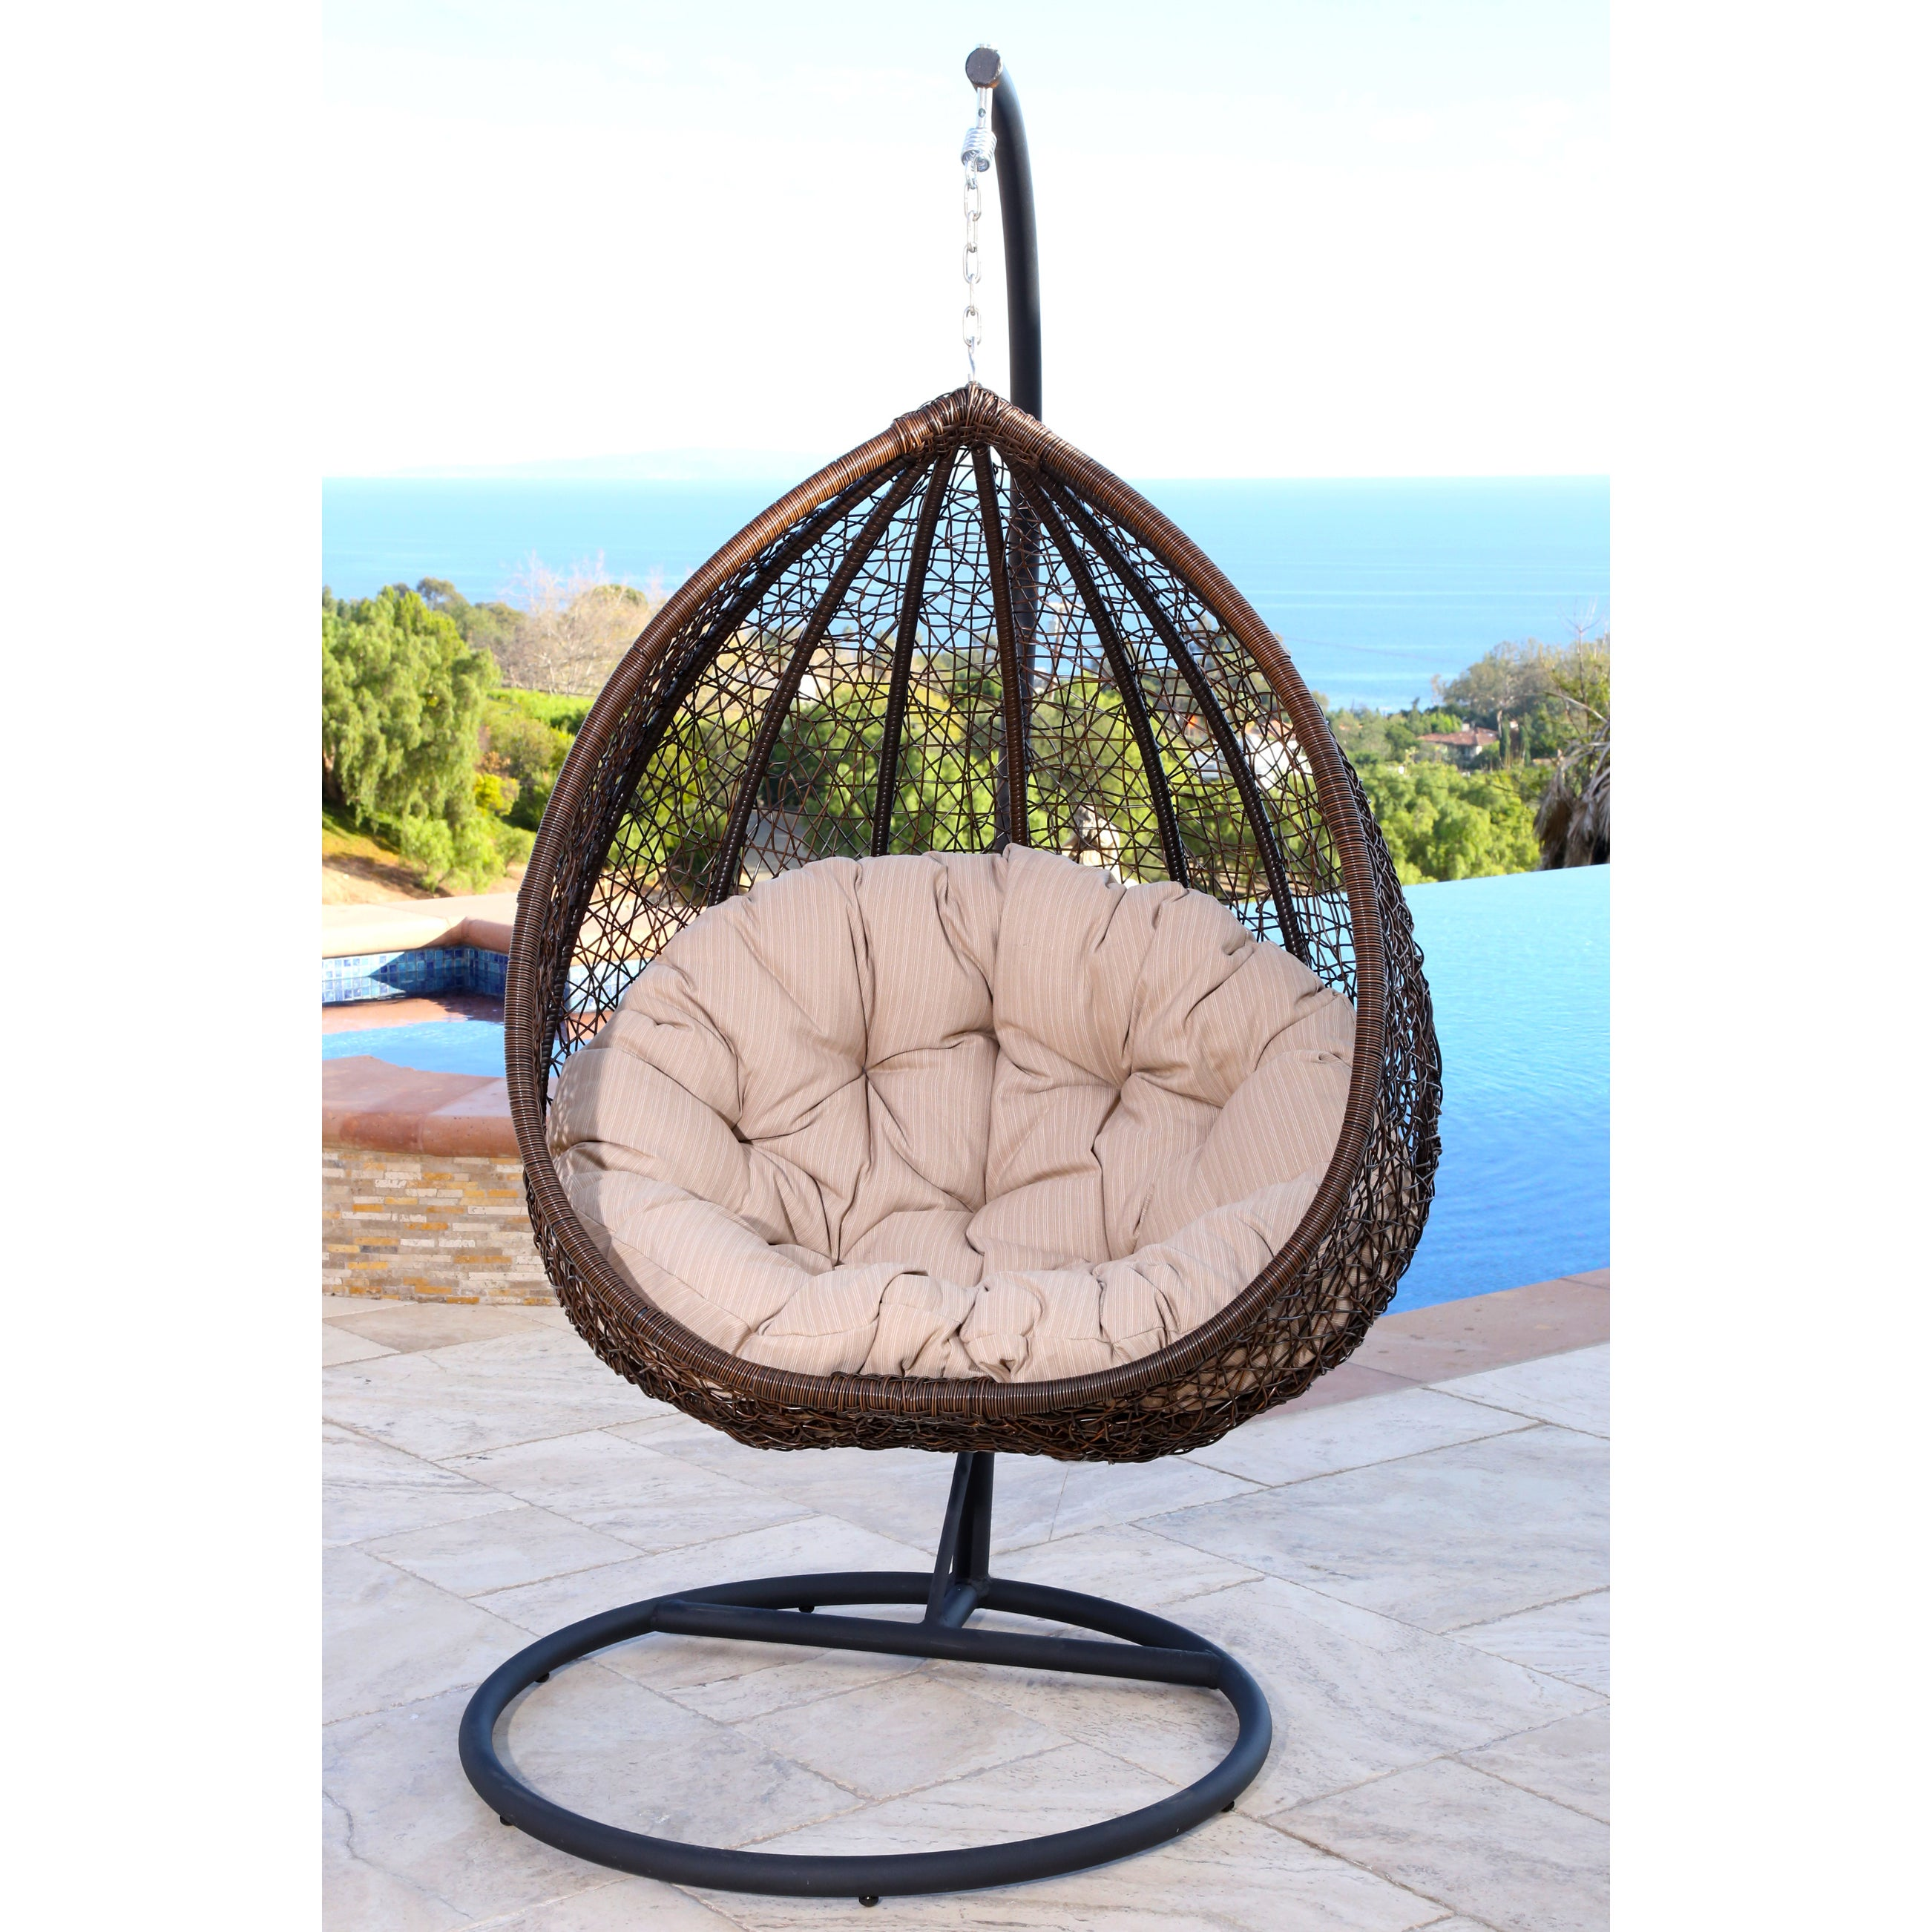 of swing fresh hammock wells along best inside sponge dainty rattan with as chair hanging captivating insight home